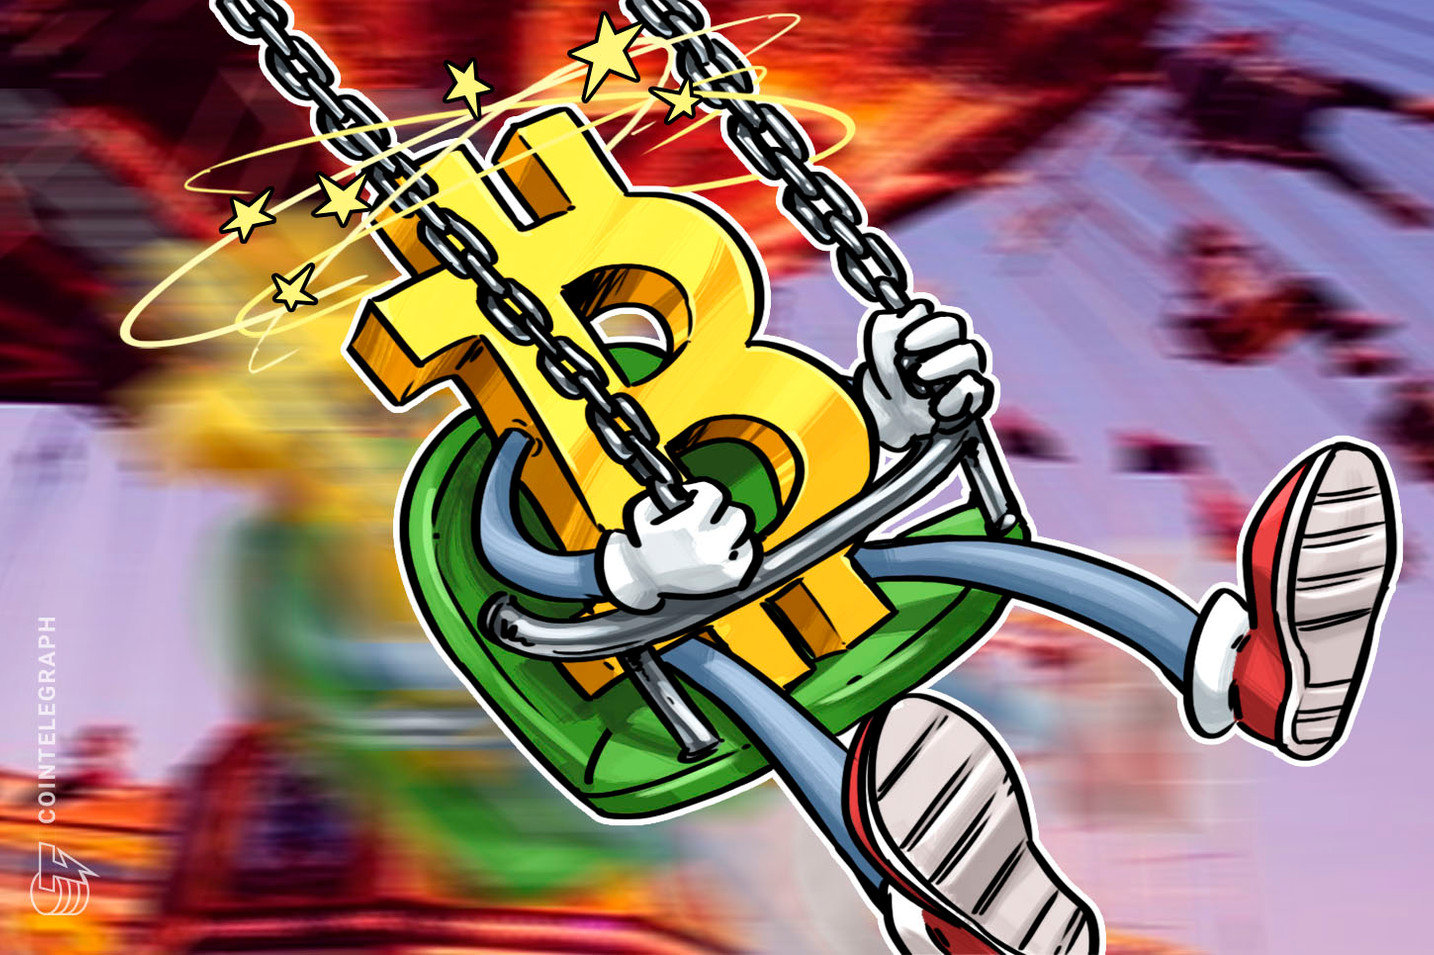 Bitcoin Price Slides Below $9K as Trader Suggests 'Technical' Retrace